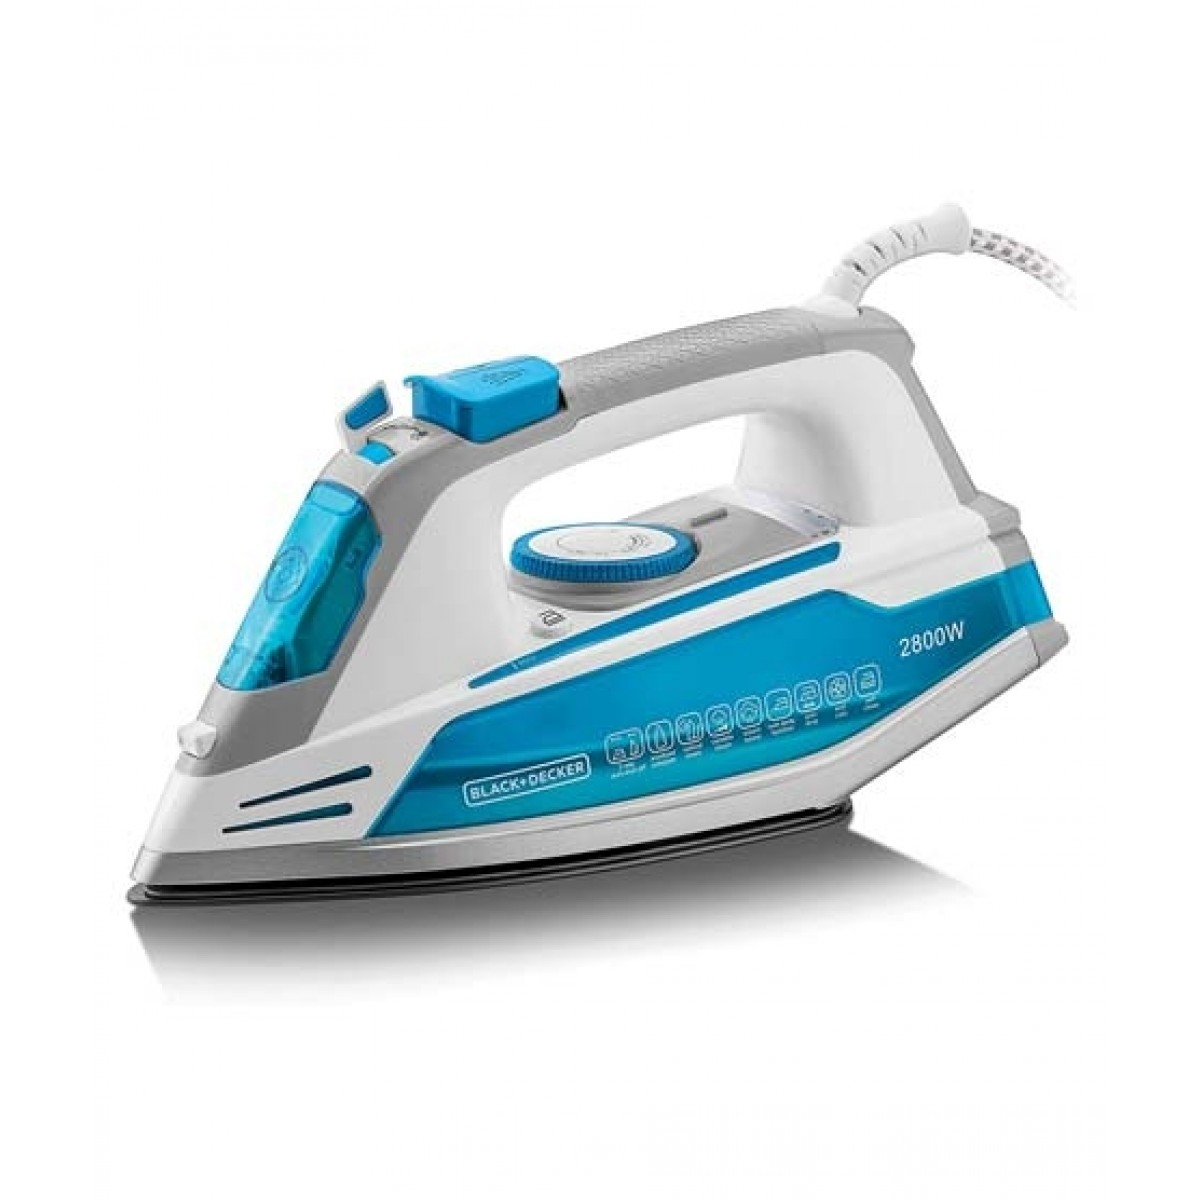 Black & Decker Steam Iron (X2800)